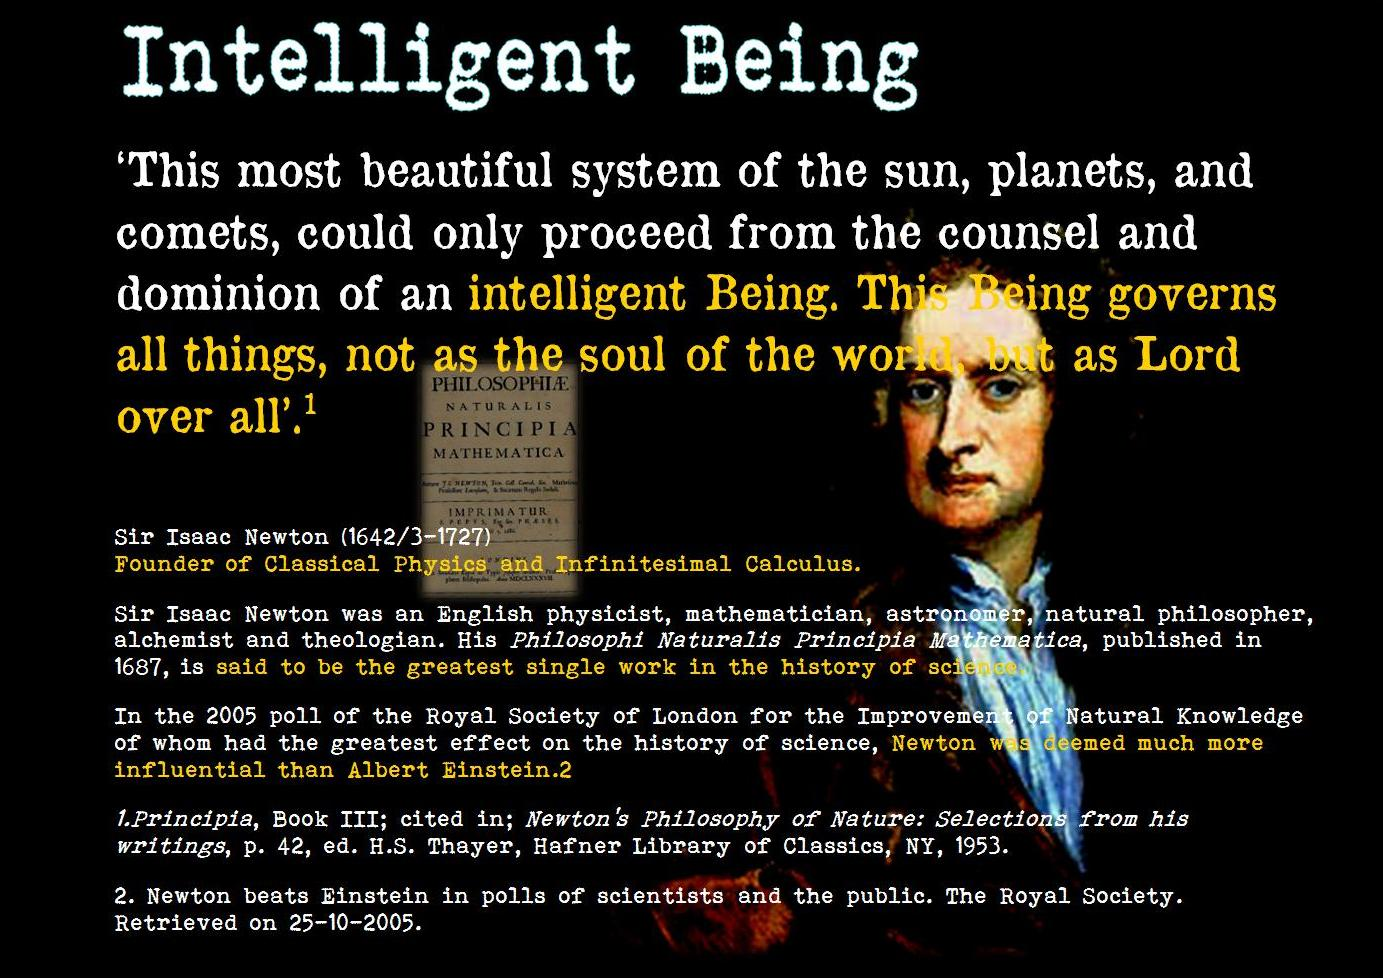 http://4.bp.blogspot.com/-M5ly58_mW5M/UJdHWUo61lI/AAAAAAAAAg0/nTpZNgREghE/s1600/Sir+Isaac+Newton+Intelligent+Being.jpg